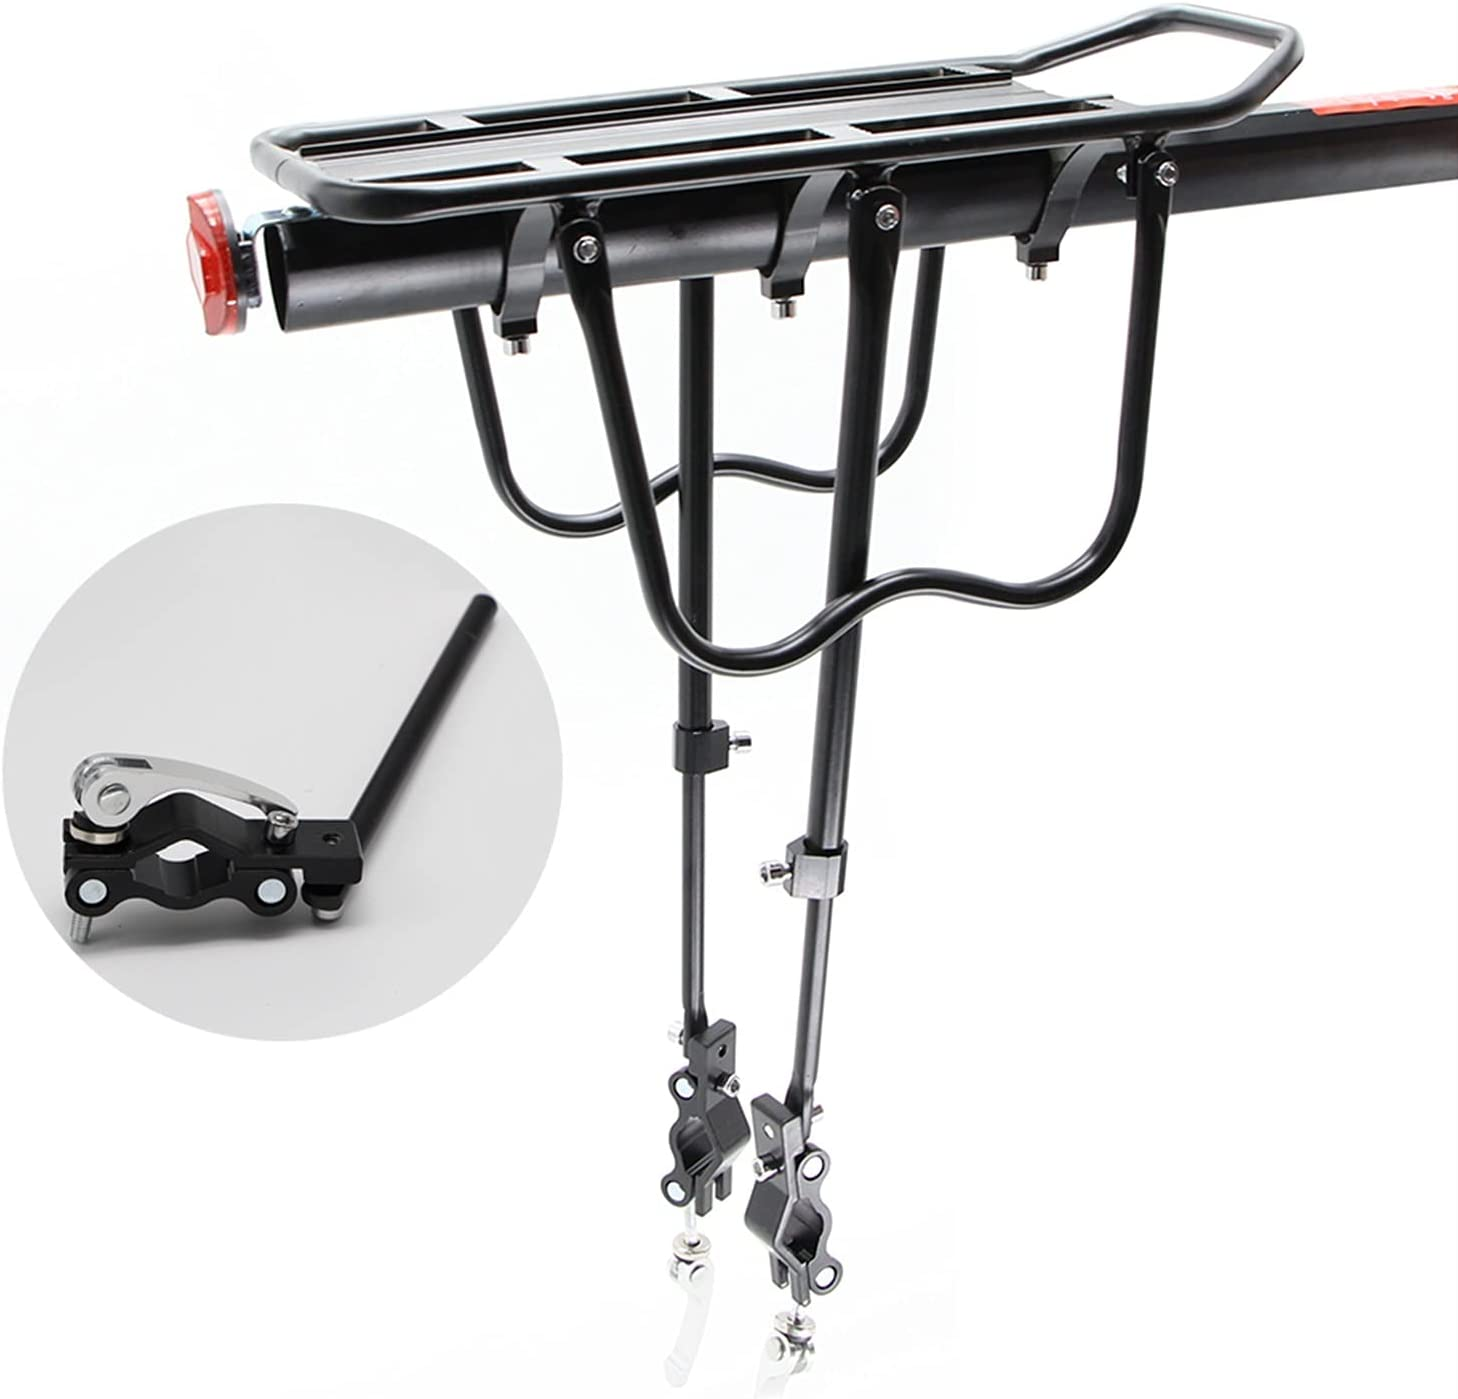 JSJJATQ Bicycle Mesa Mall Rear Rack 100KG Luggage Carrier Cargo Re Outlet SALE